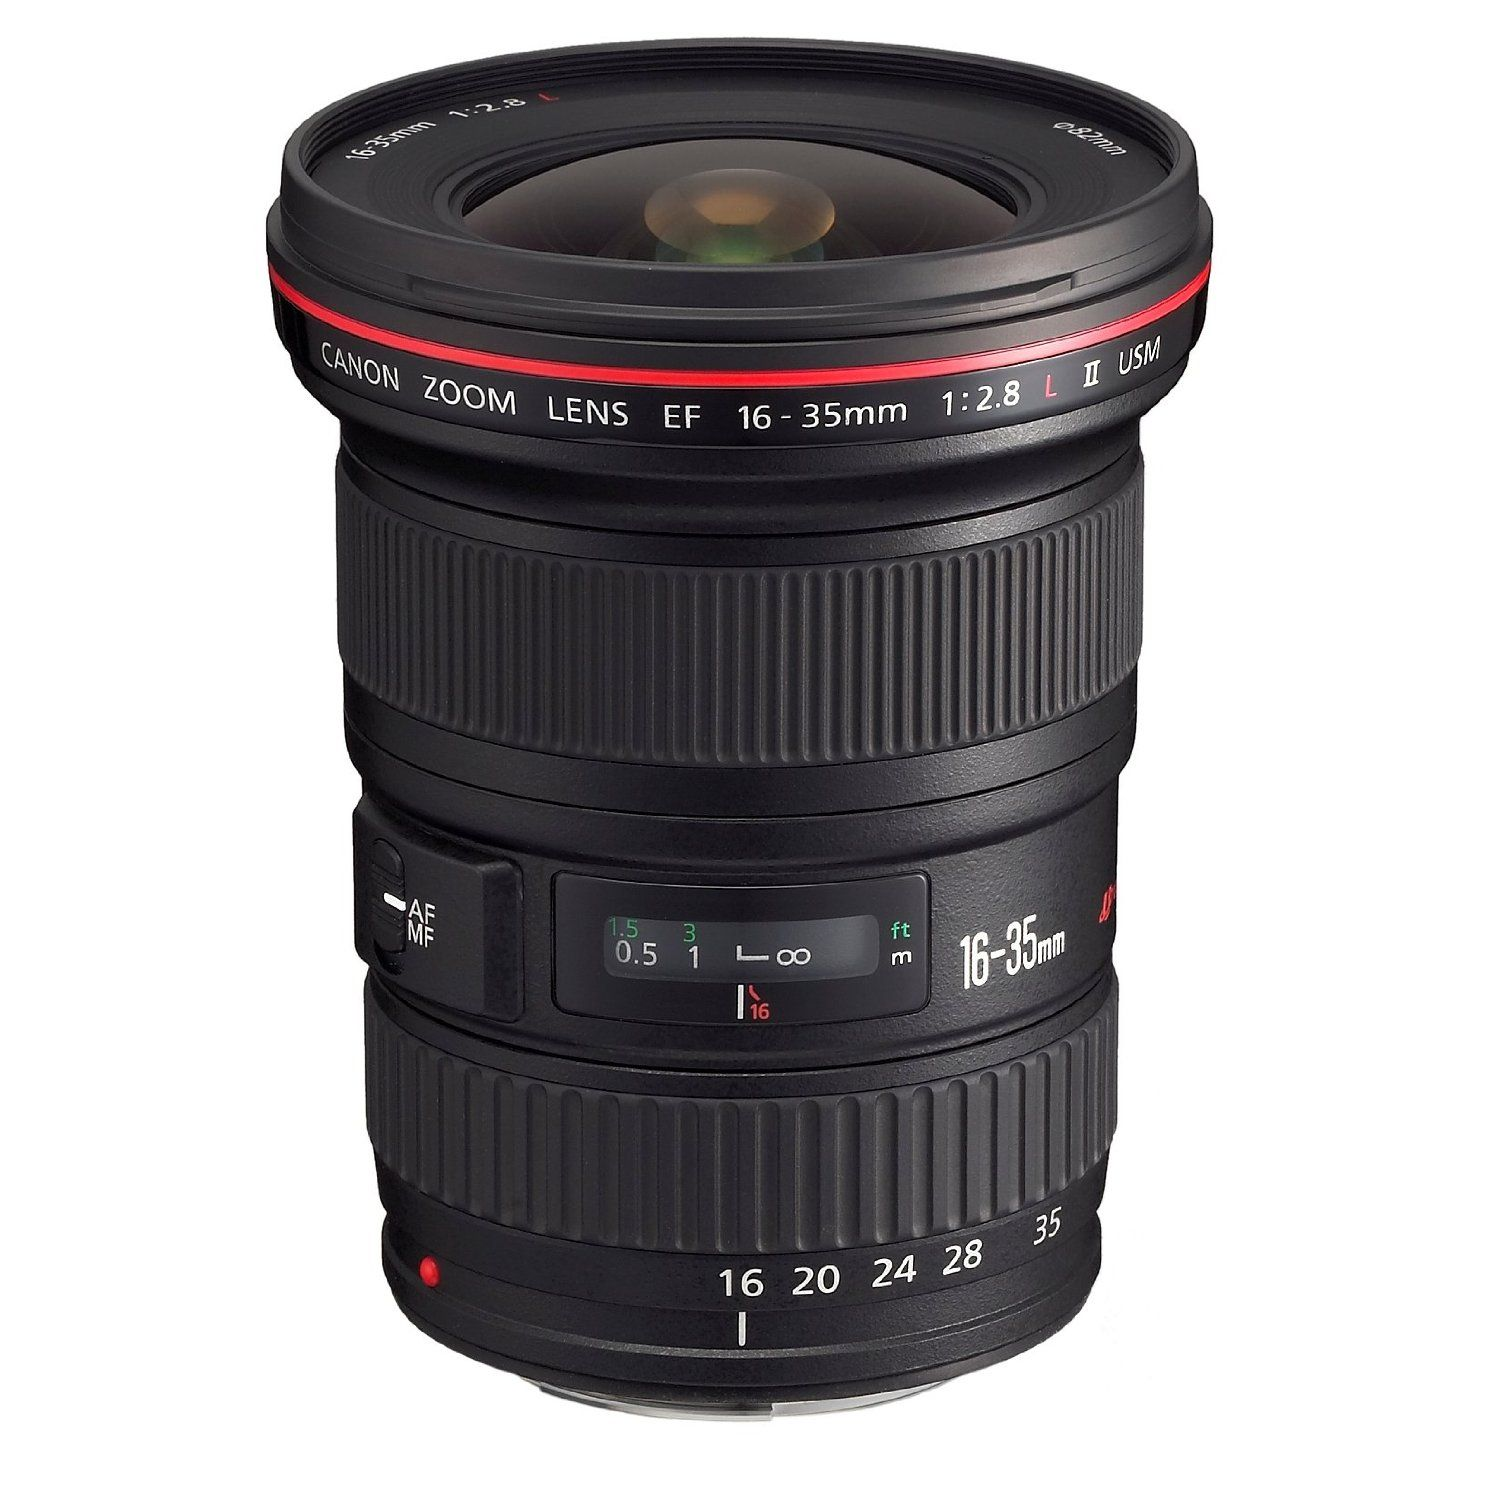 Choosing The Best Lens For DSLR Video (With images) Dslr